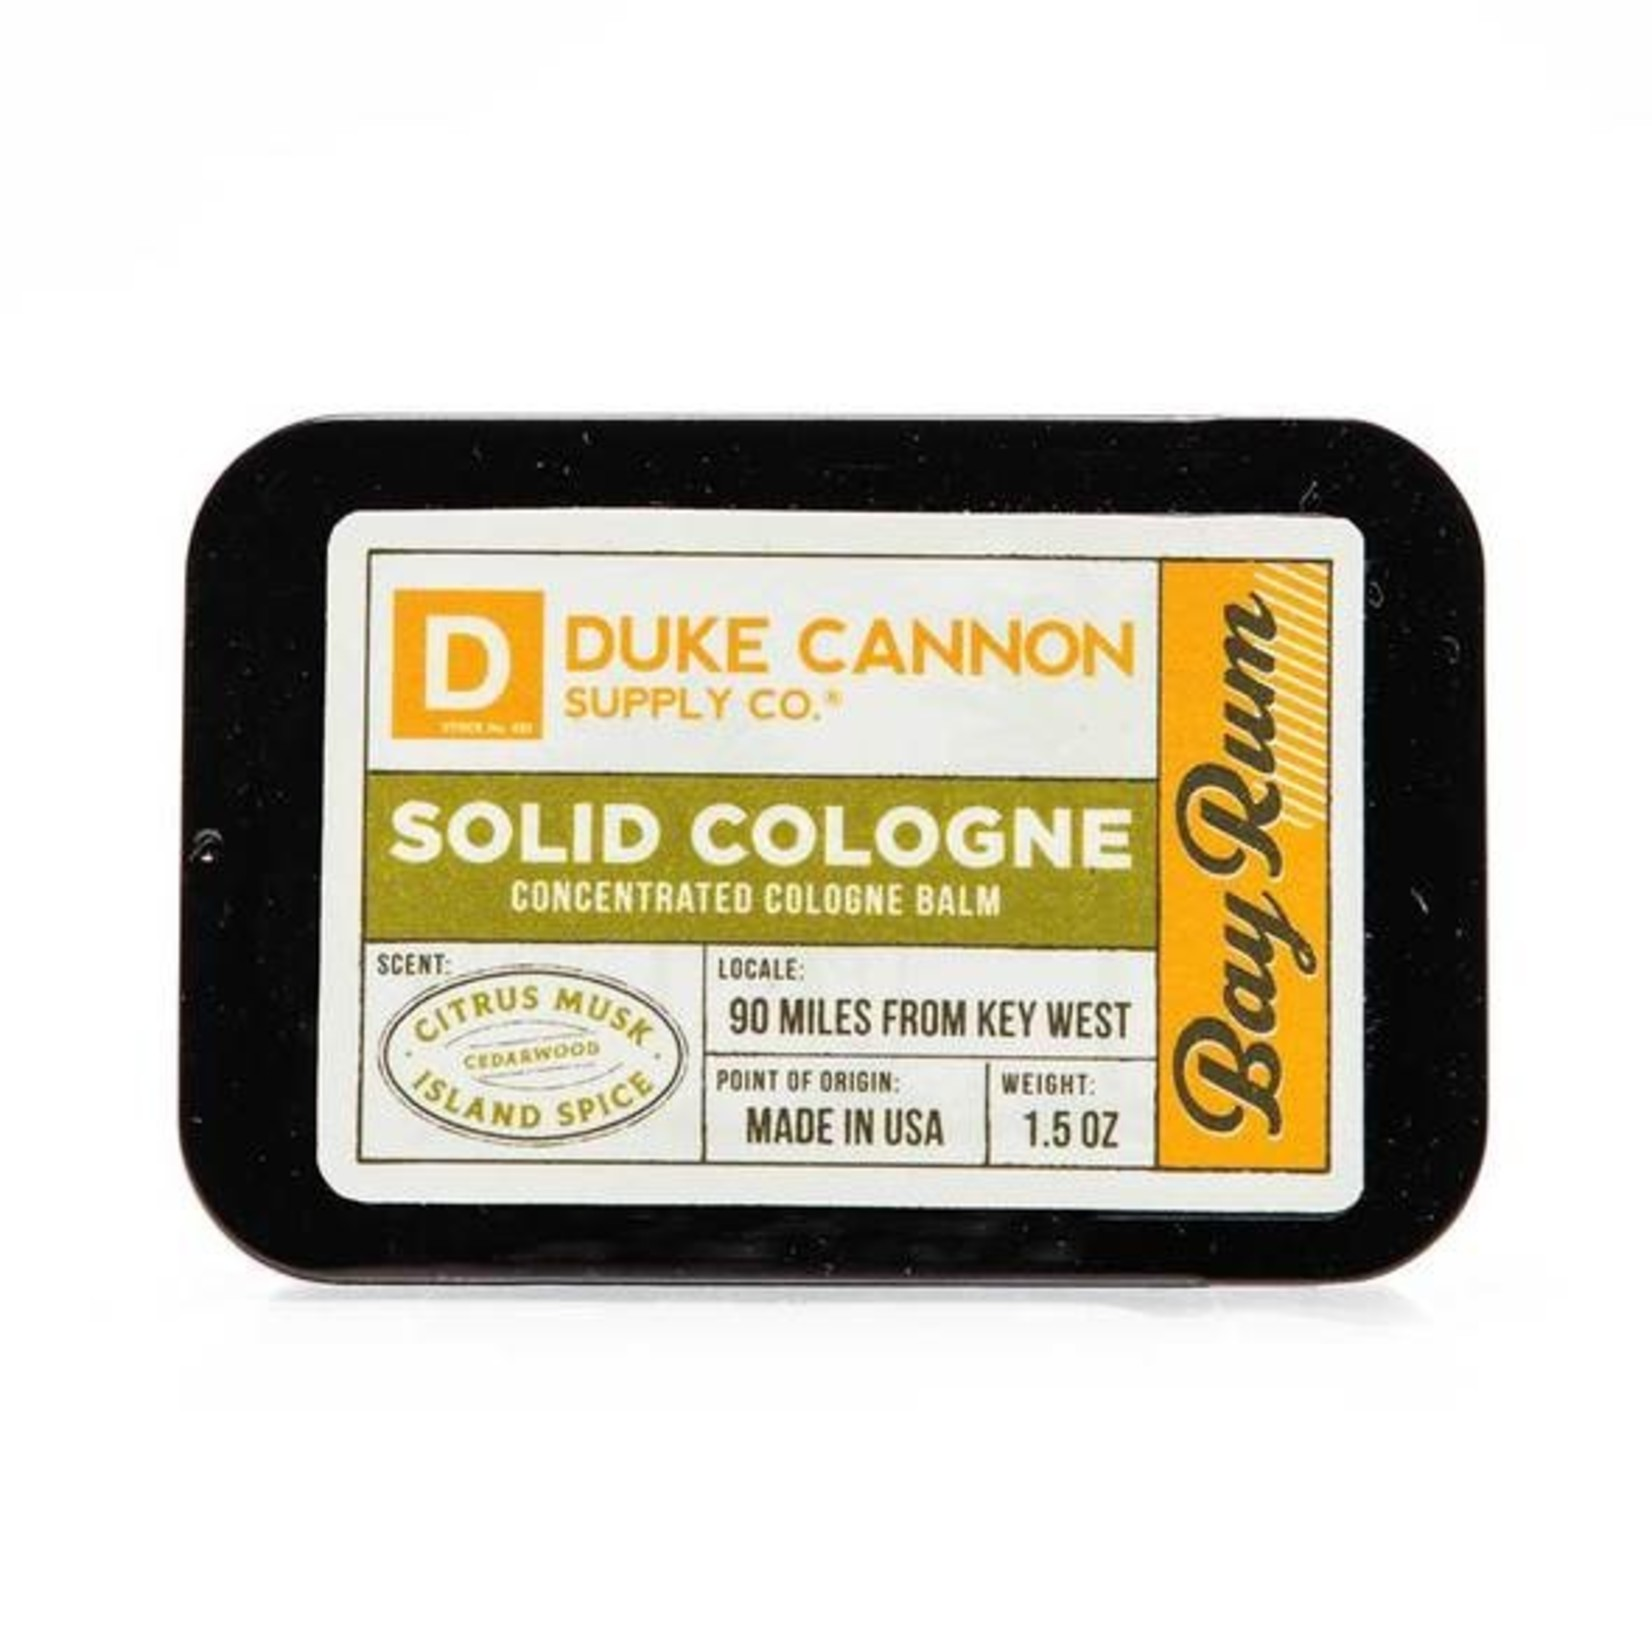 Duke Cannon Supply Co. Duke Cannon Special Edition Solid Cologne - Bay Rum